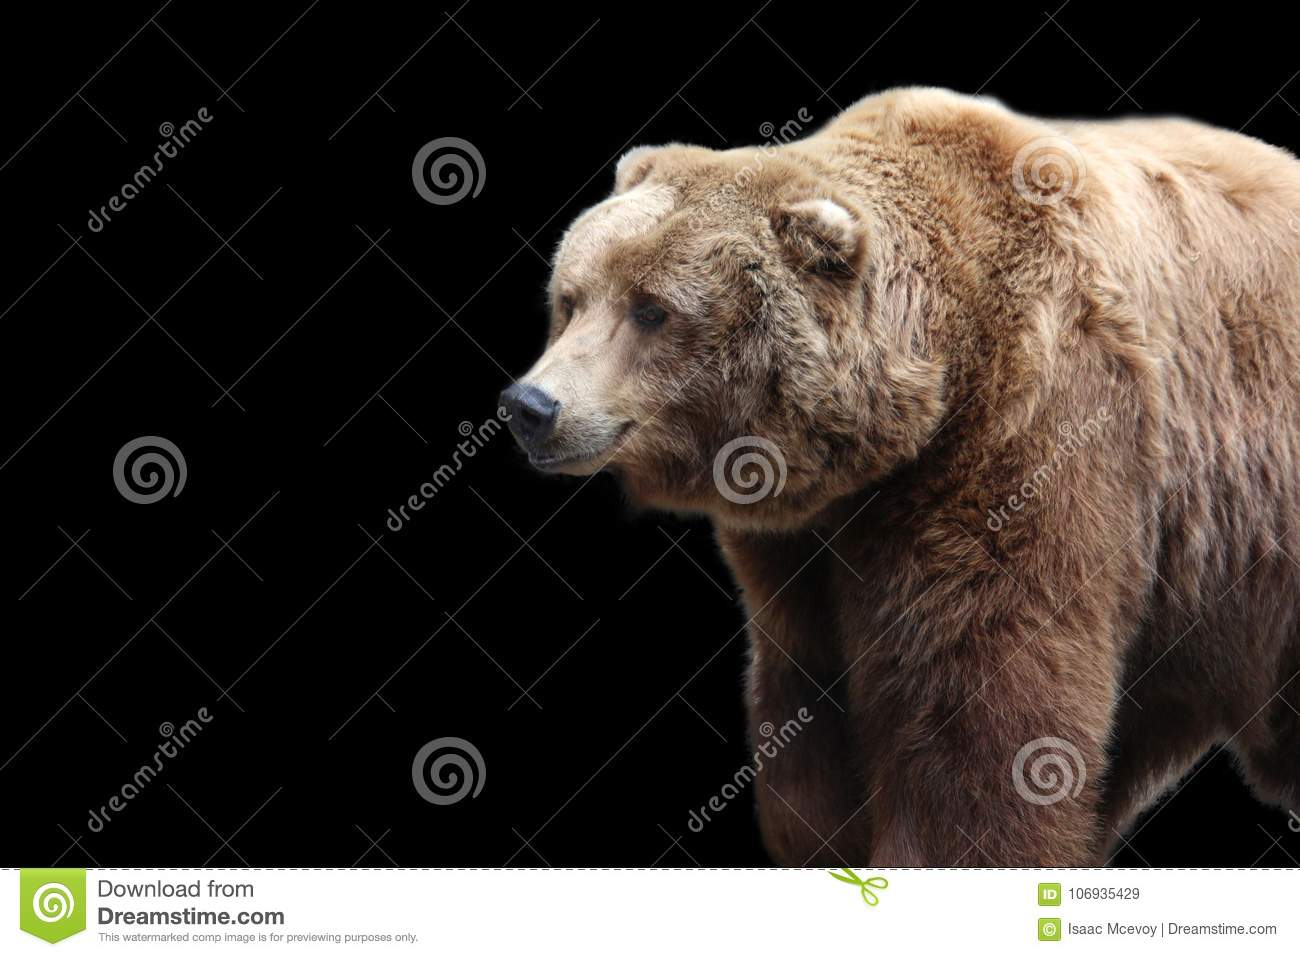 grizzly bear on a